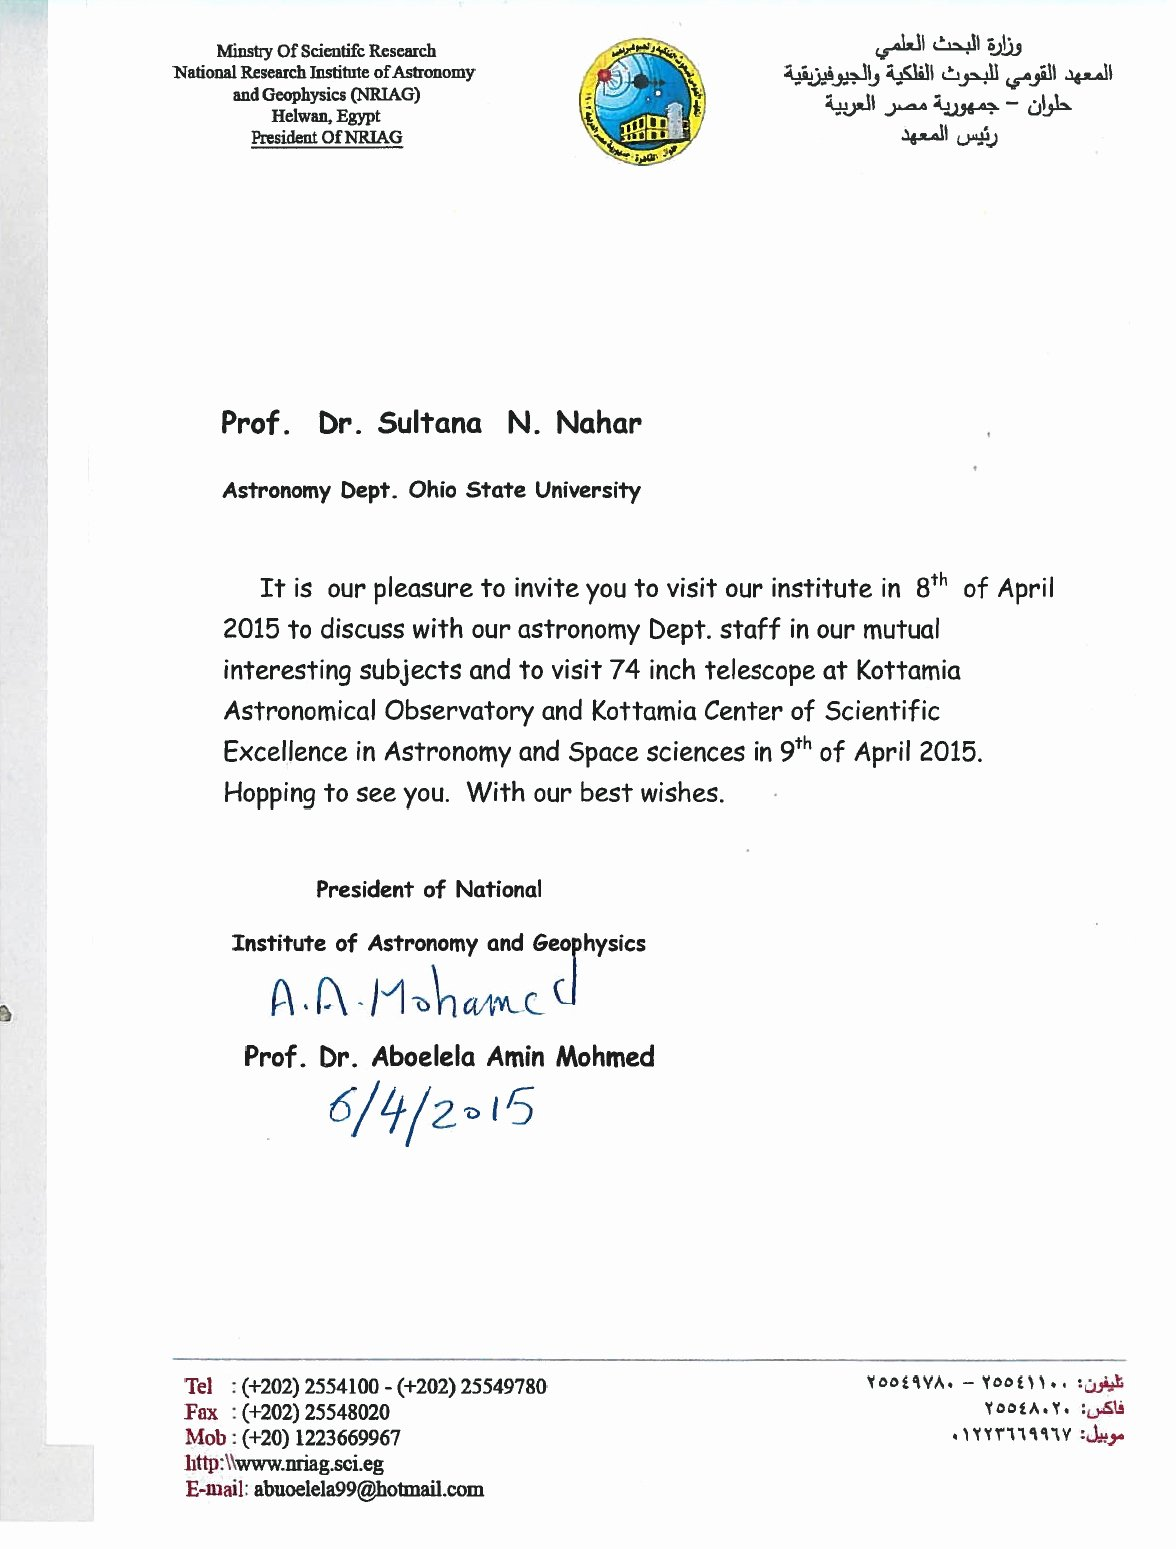 Nsf Letter Of Collaboration Template Inspirational Research Collaboration Invitation Letter